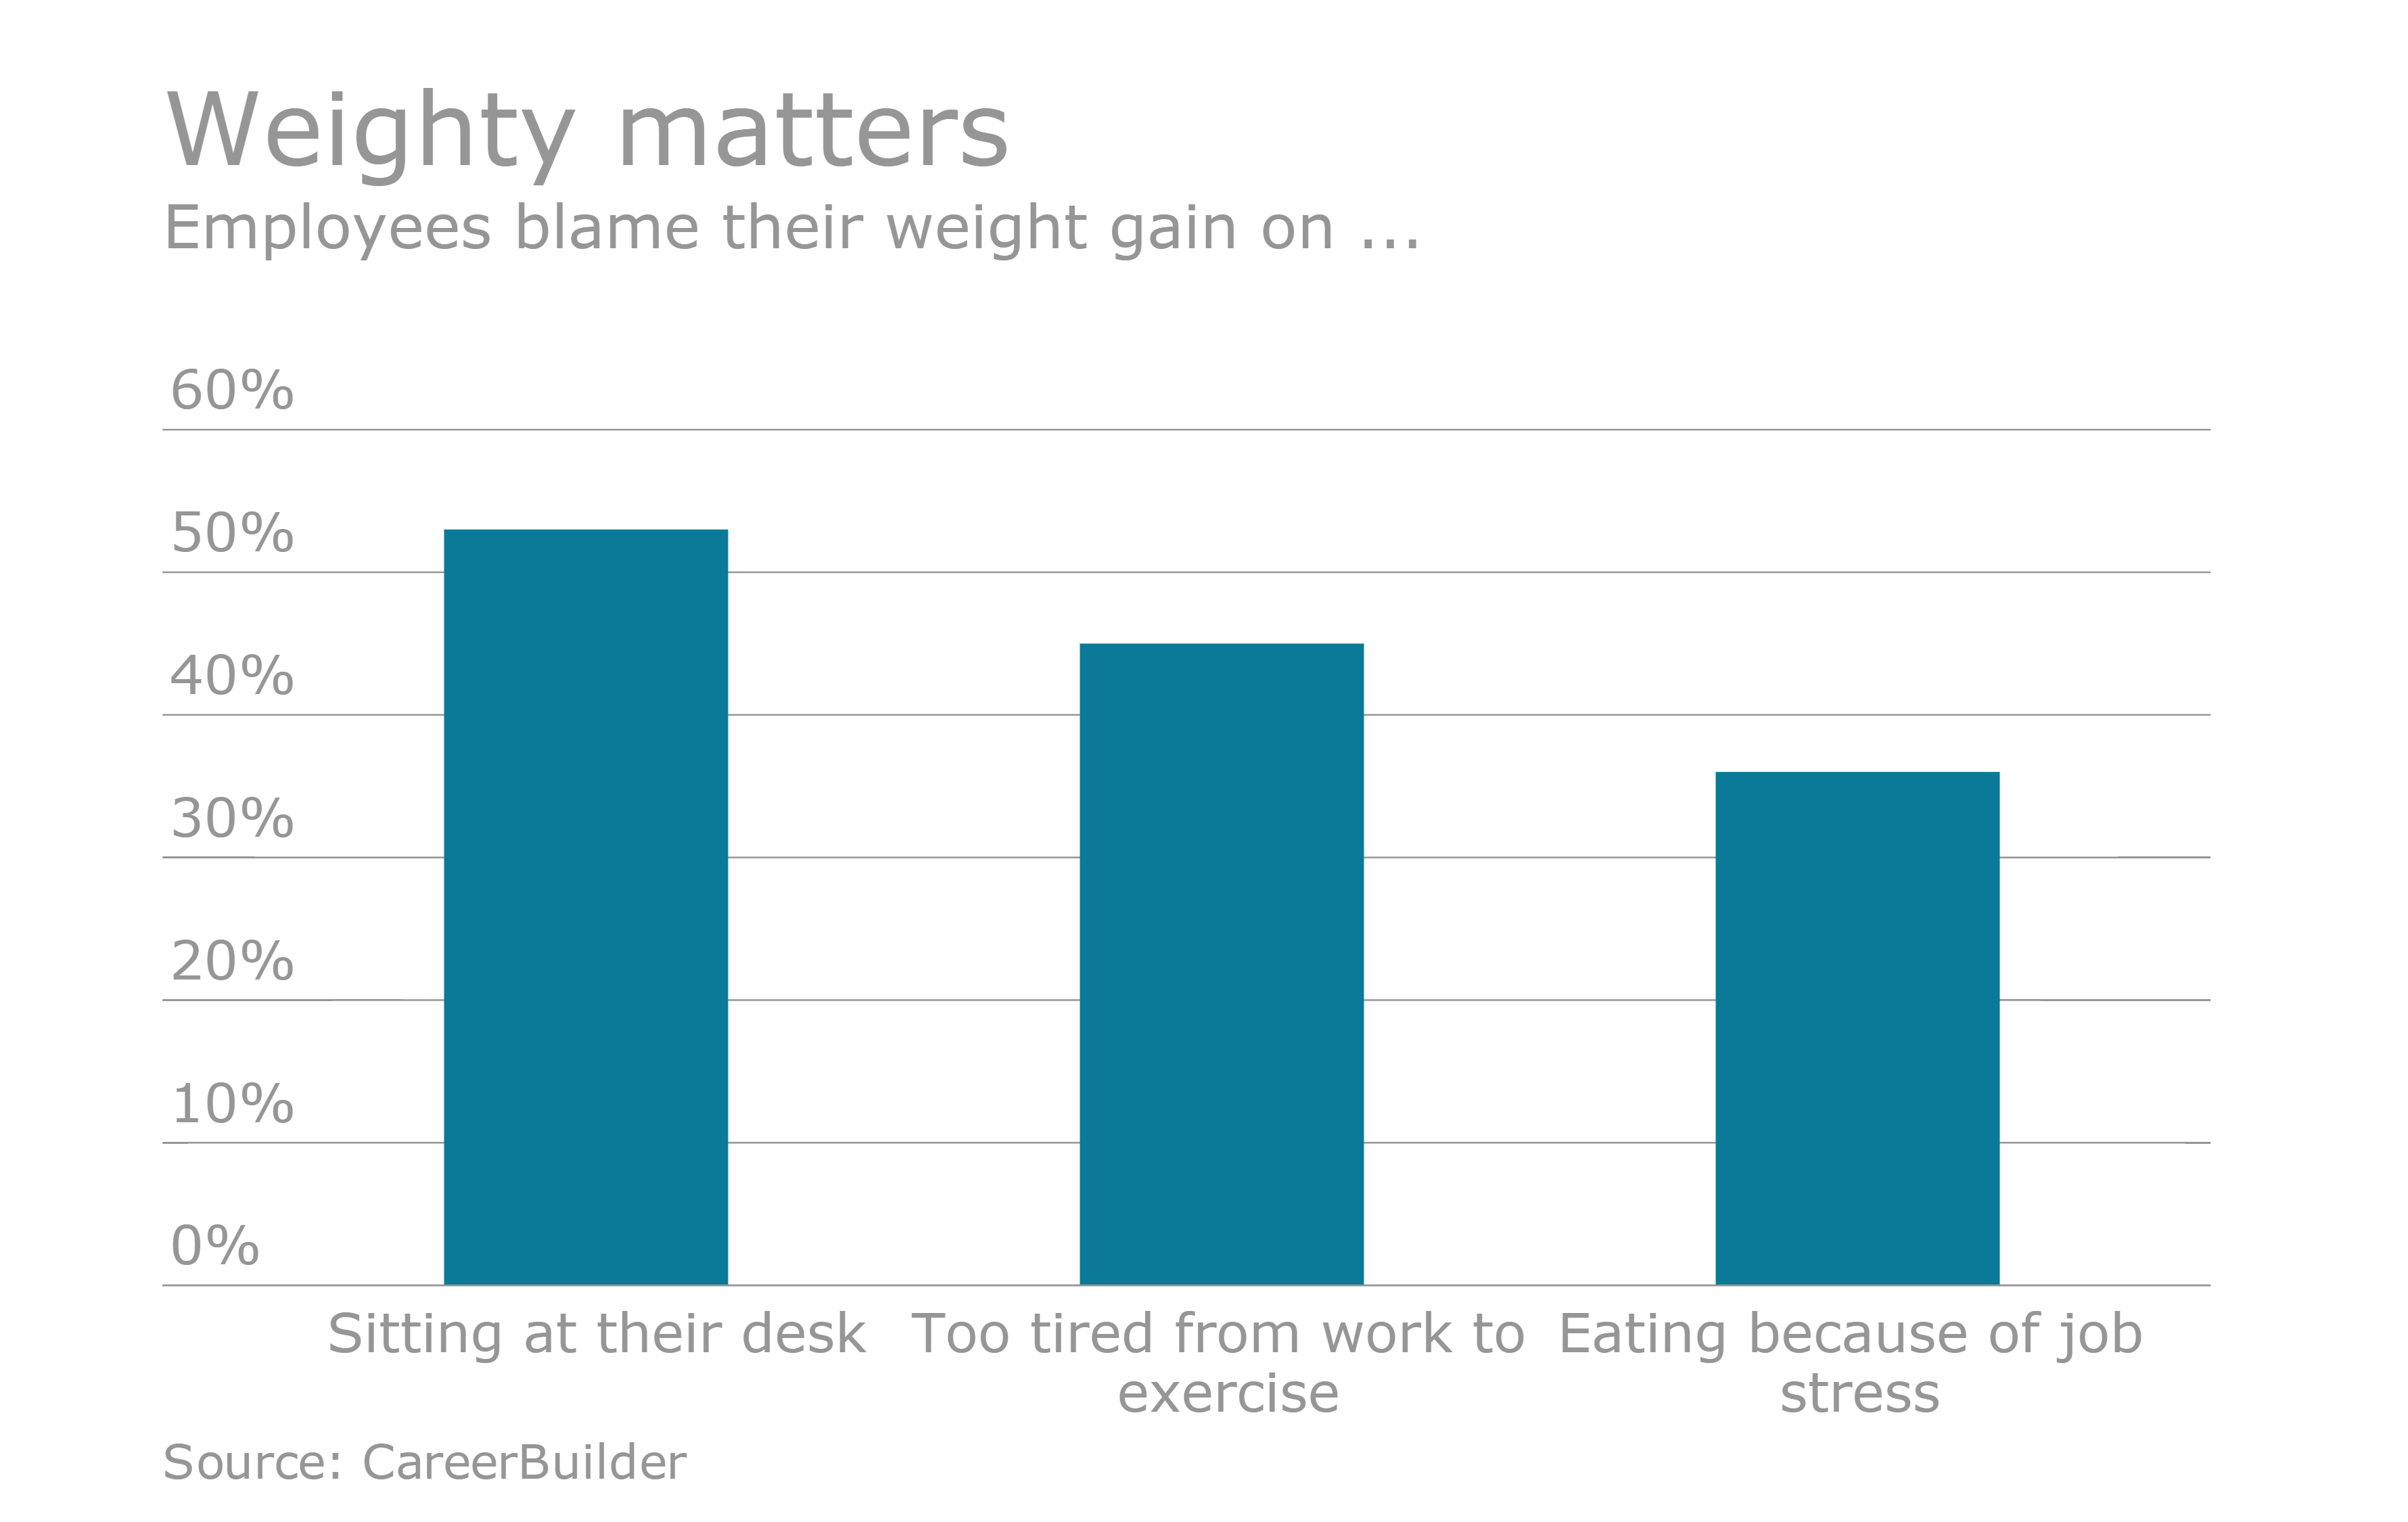 Workers blaming weight gain on job stress